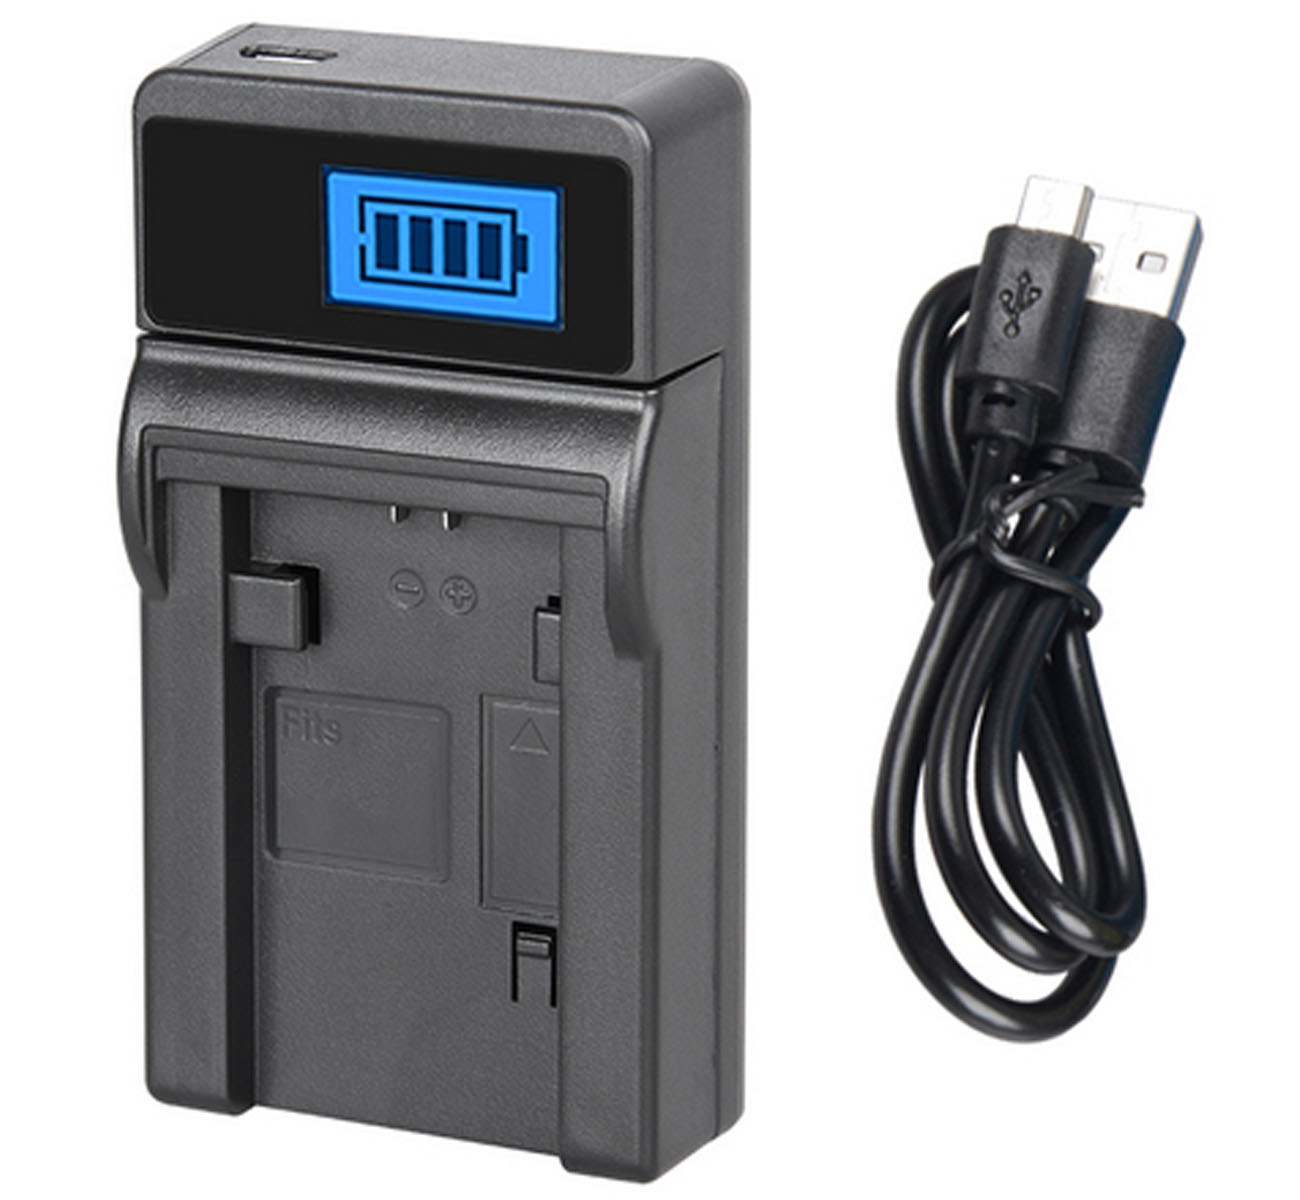 GZ-MG40U GZ-MG70U Camcorder GZ-MG50U GZ-MG30U Battery Charger for JVC Everio GZ-MG20U